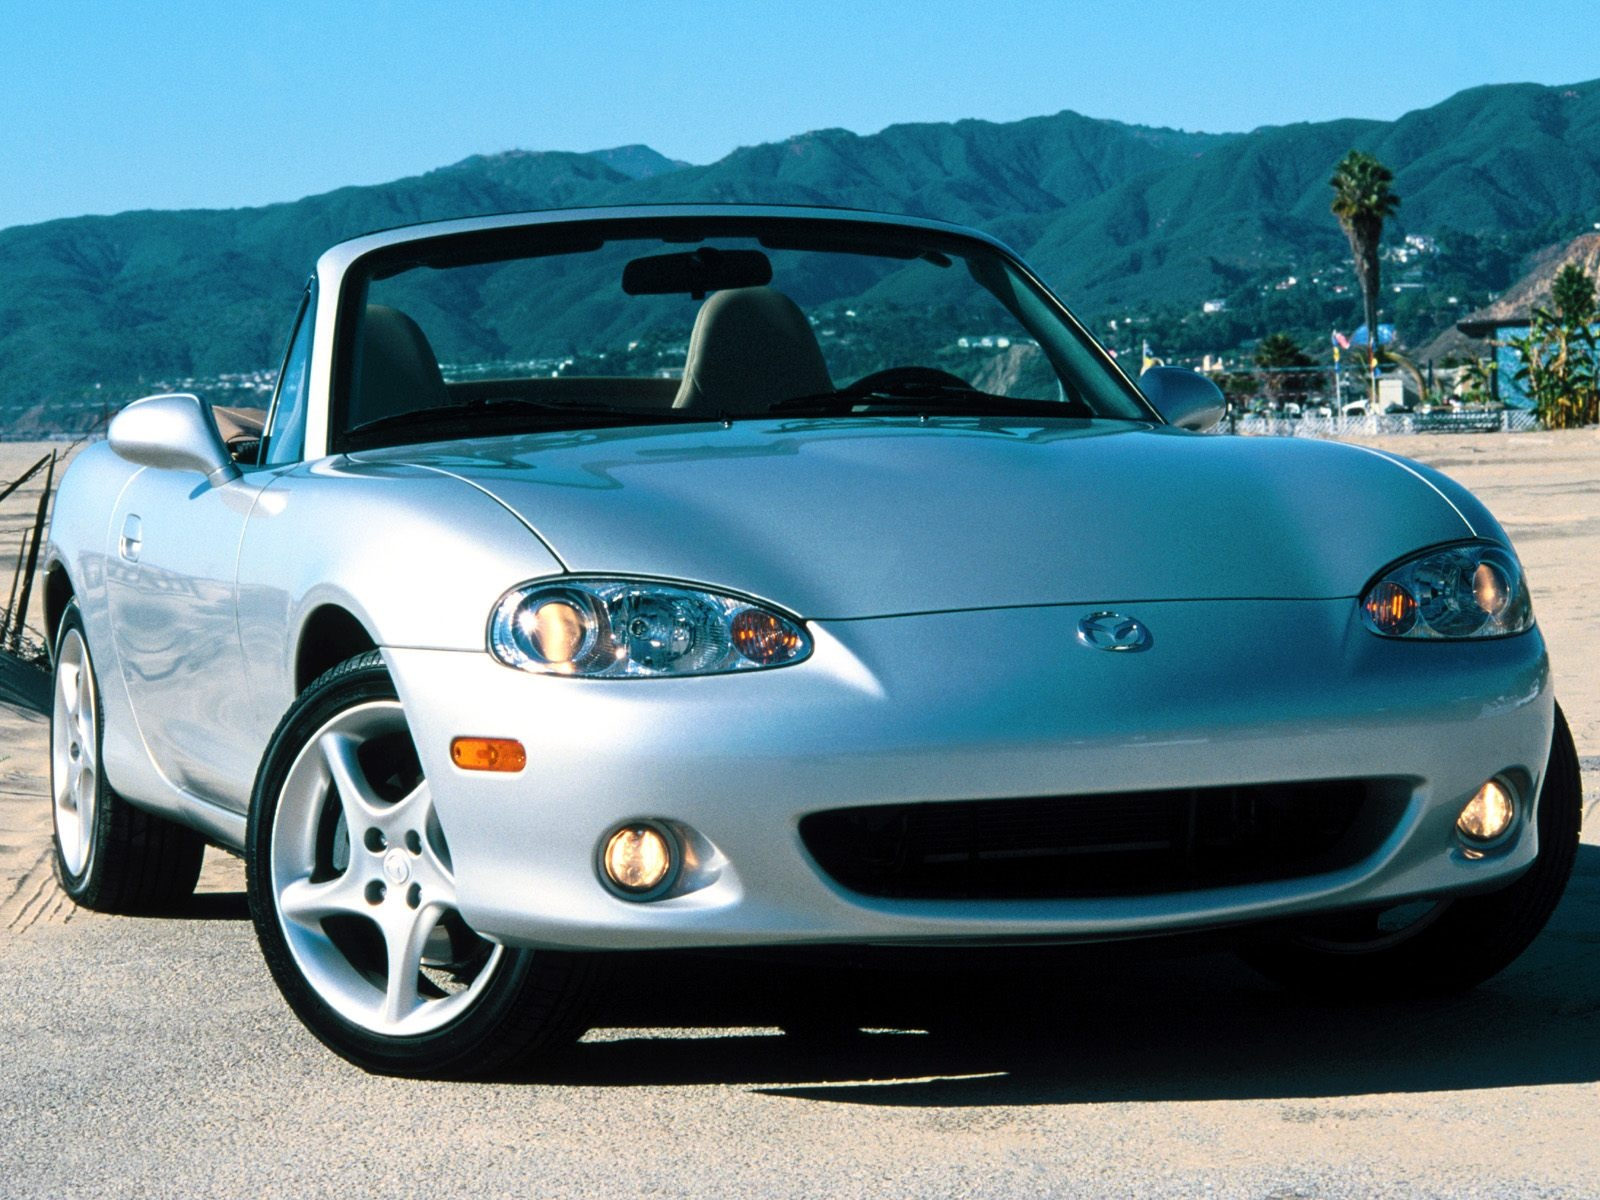 2002 Mazda Mx 5 Miata Overview Cargurus Diagram Of 1998 Bmw Z3 Engine